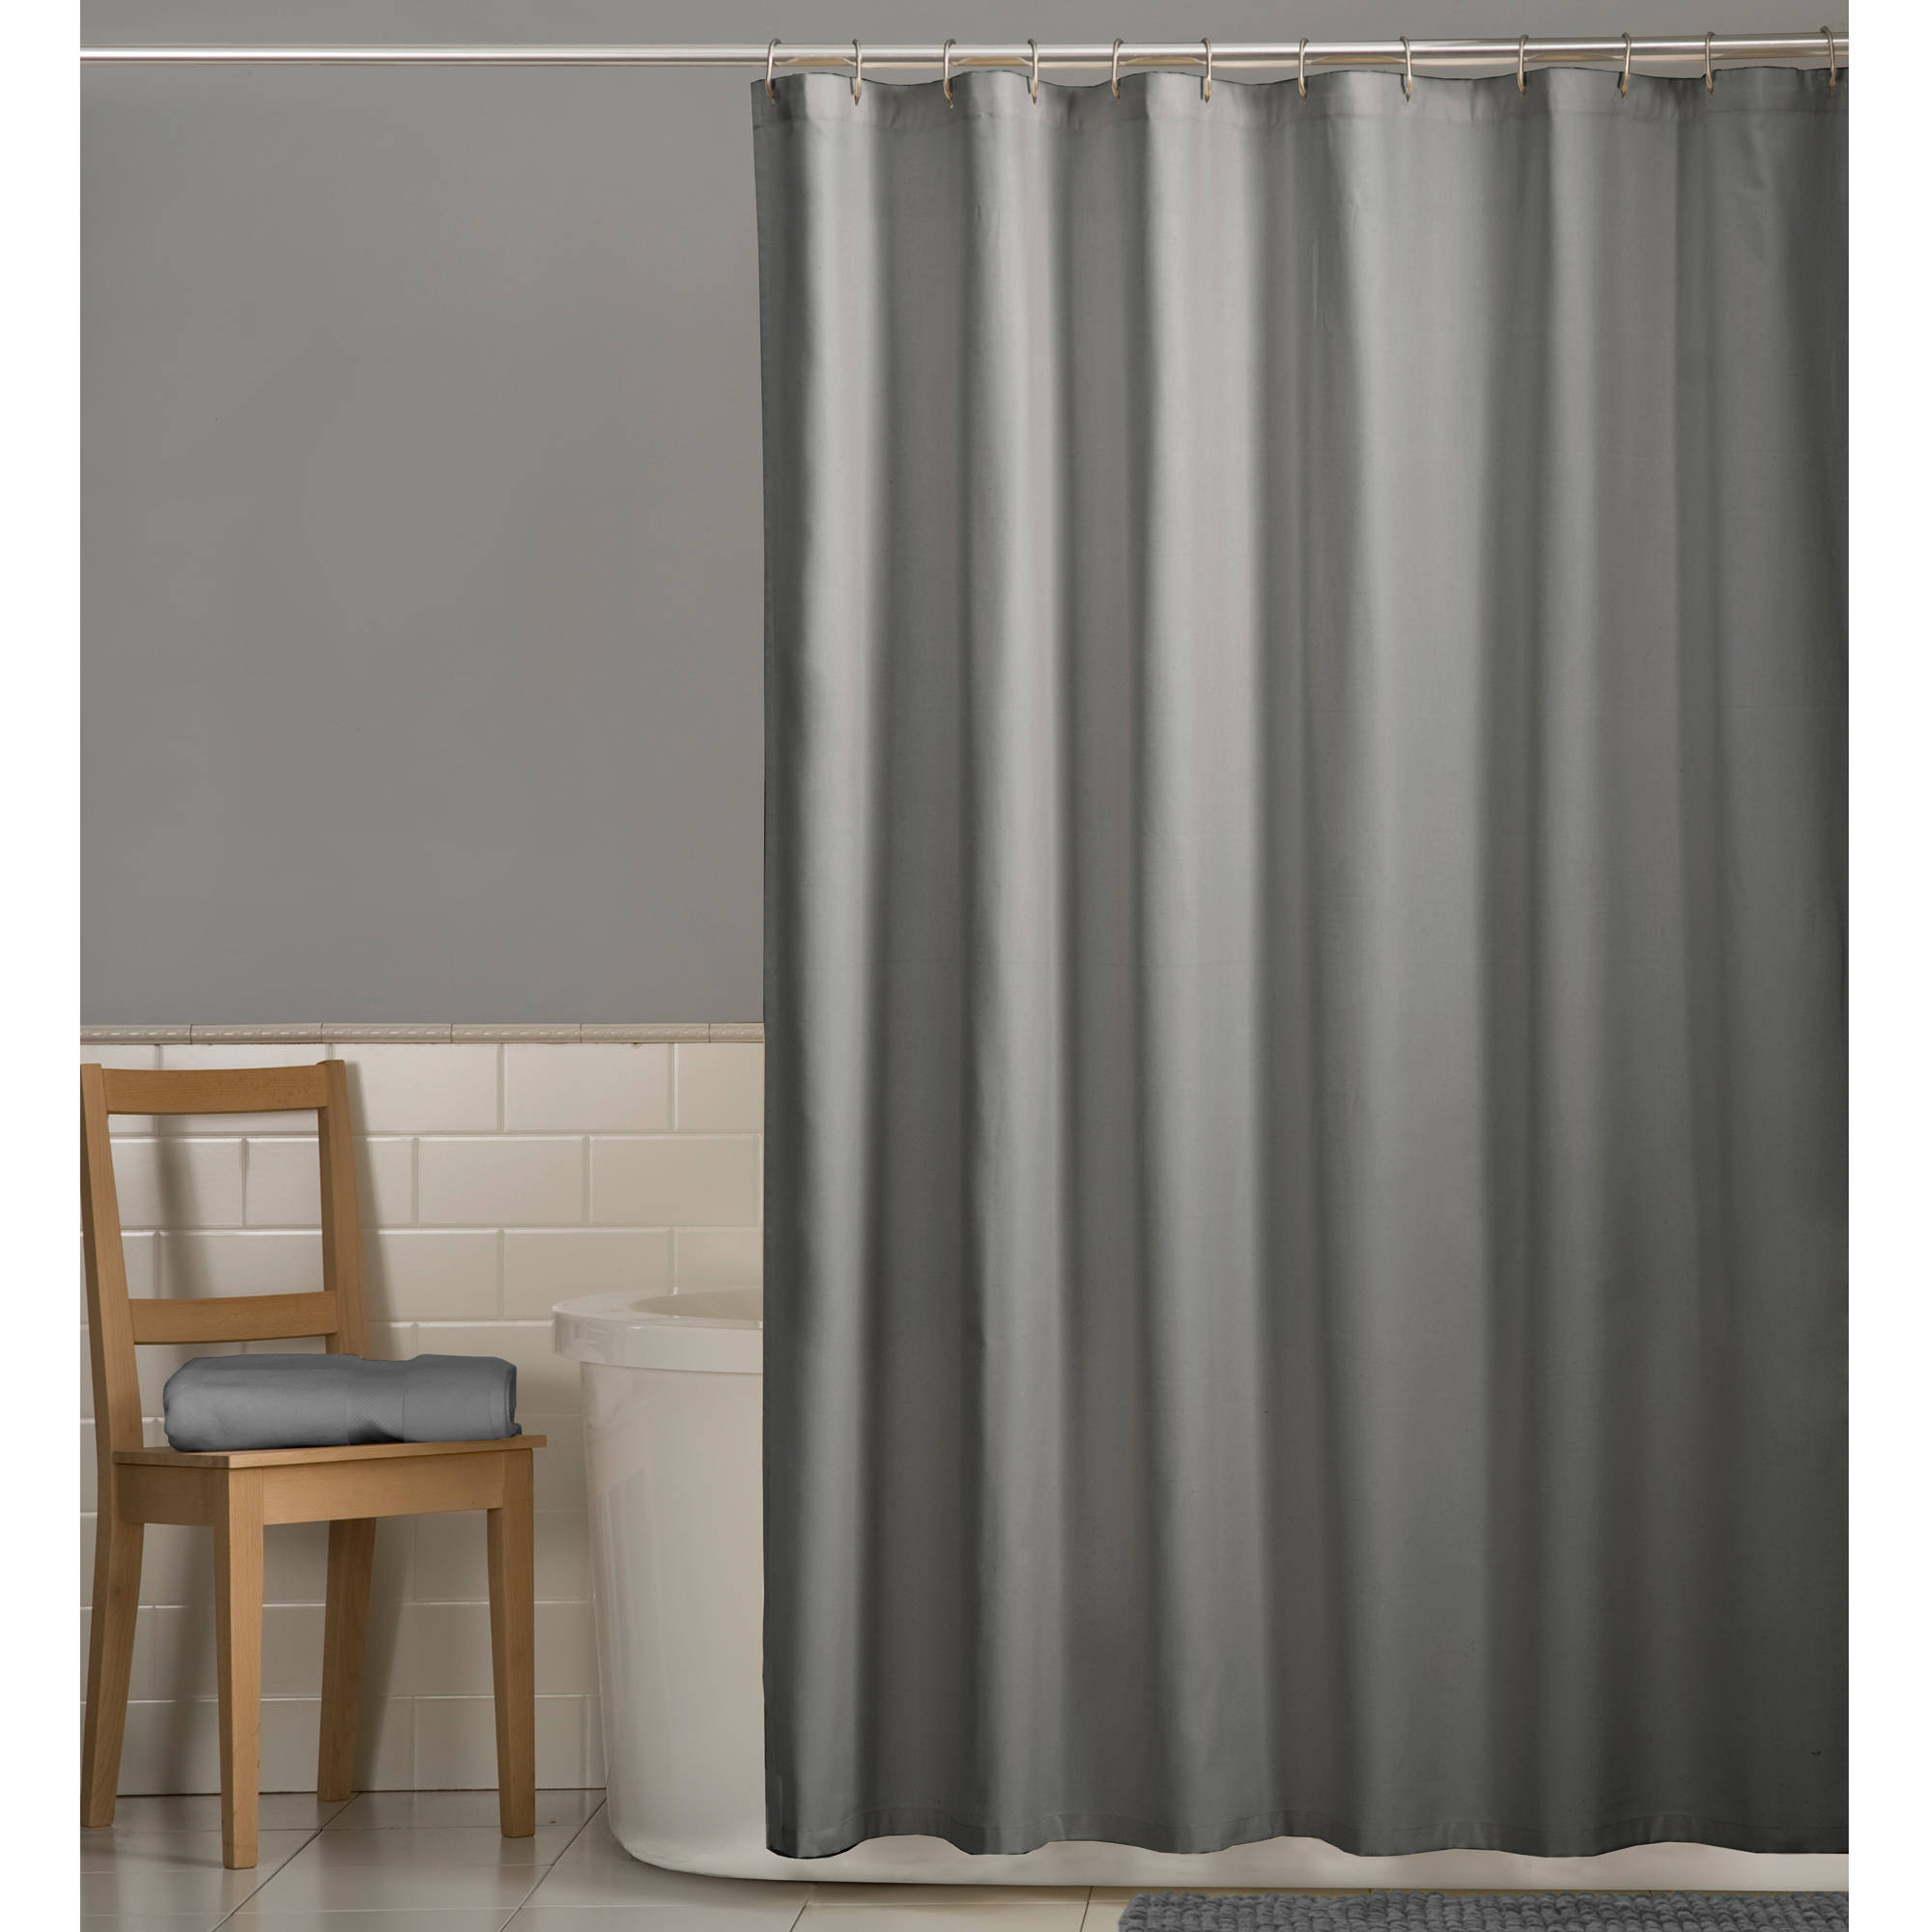 Mainstays Fabric Shower Curtain Liner - Walmart.com